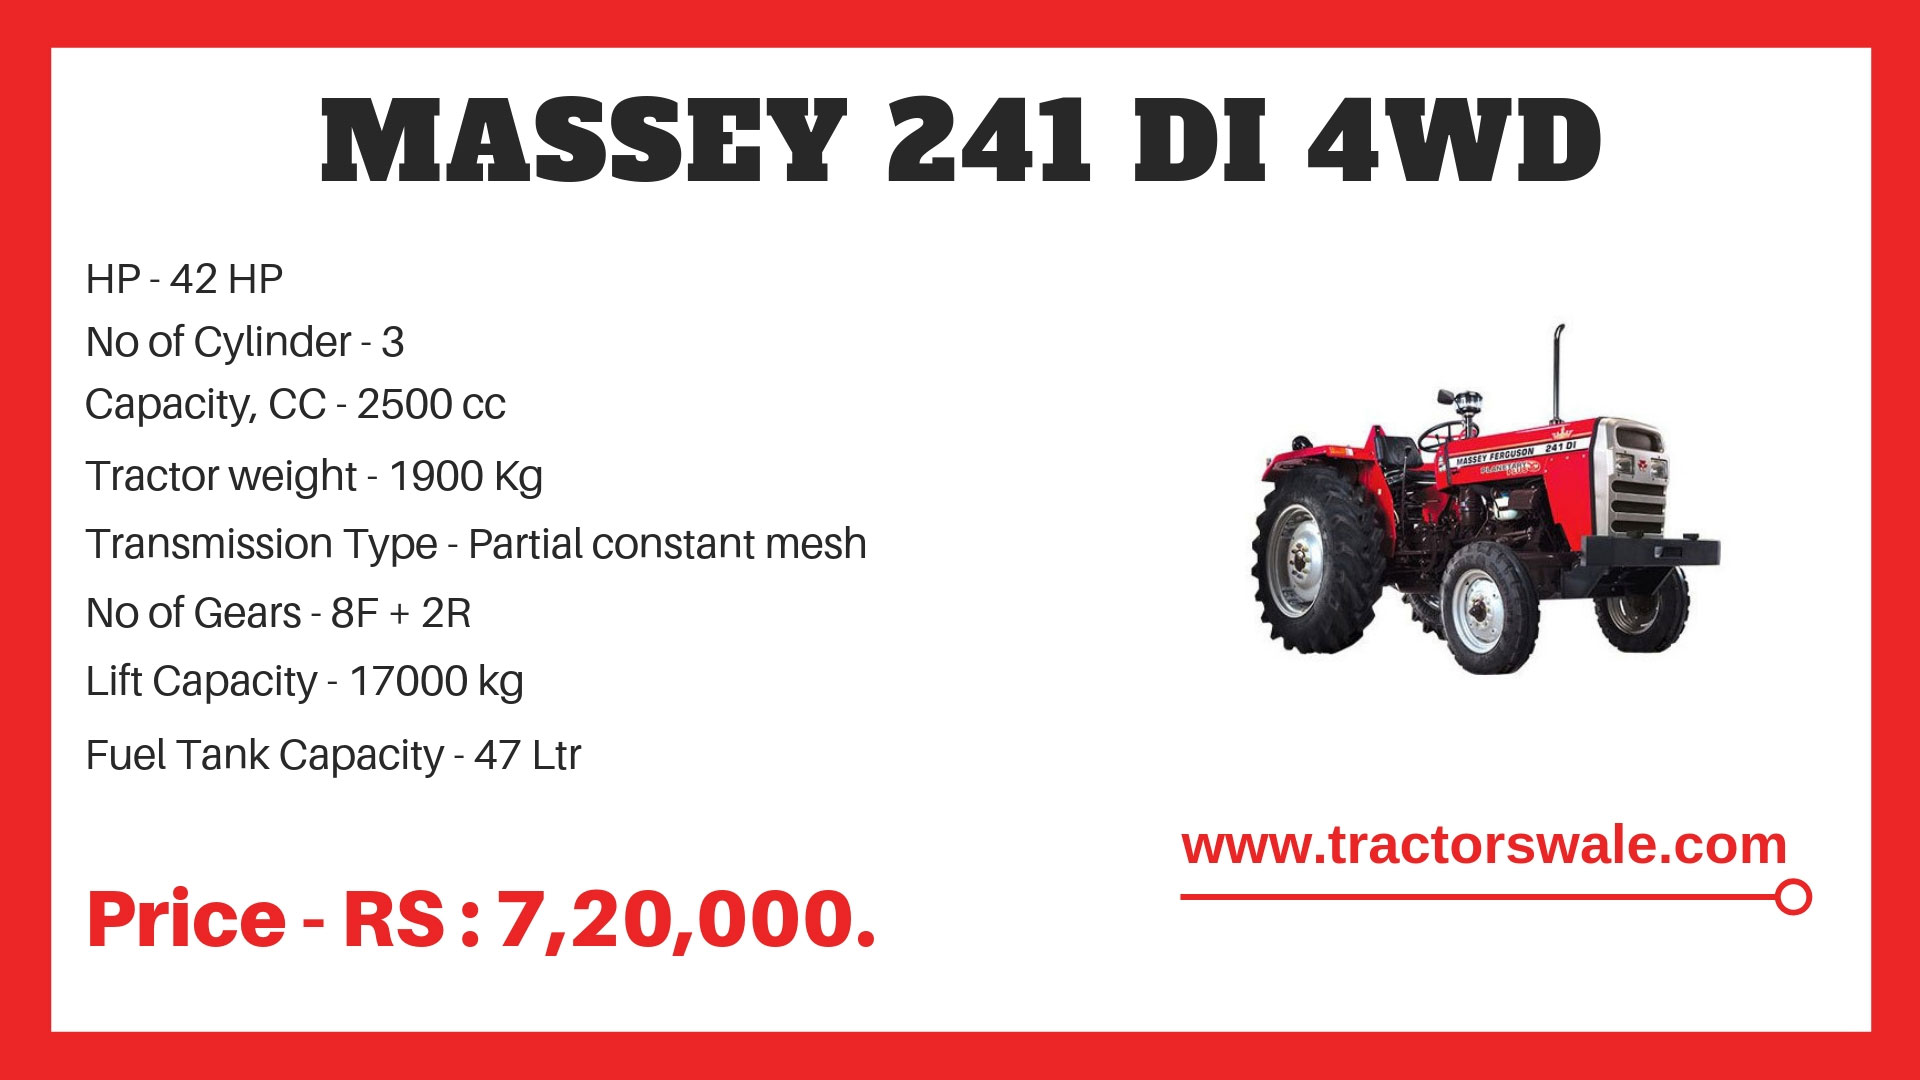 massey 241 di 4wd tractor specification